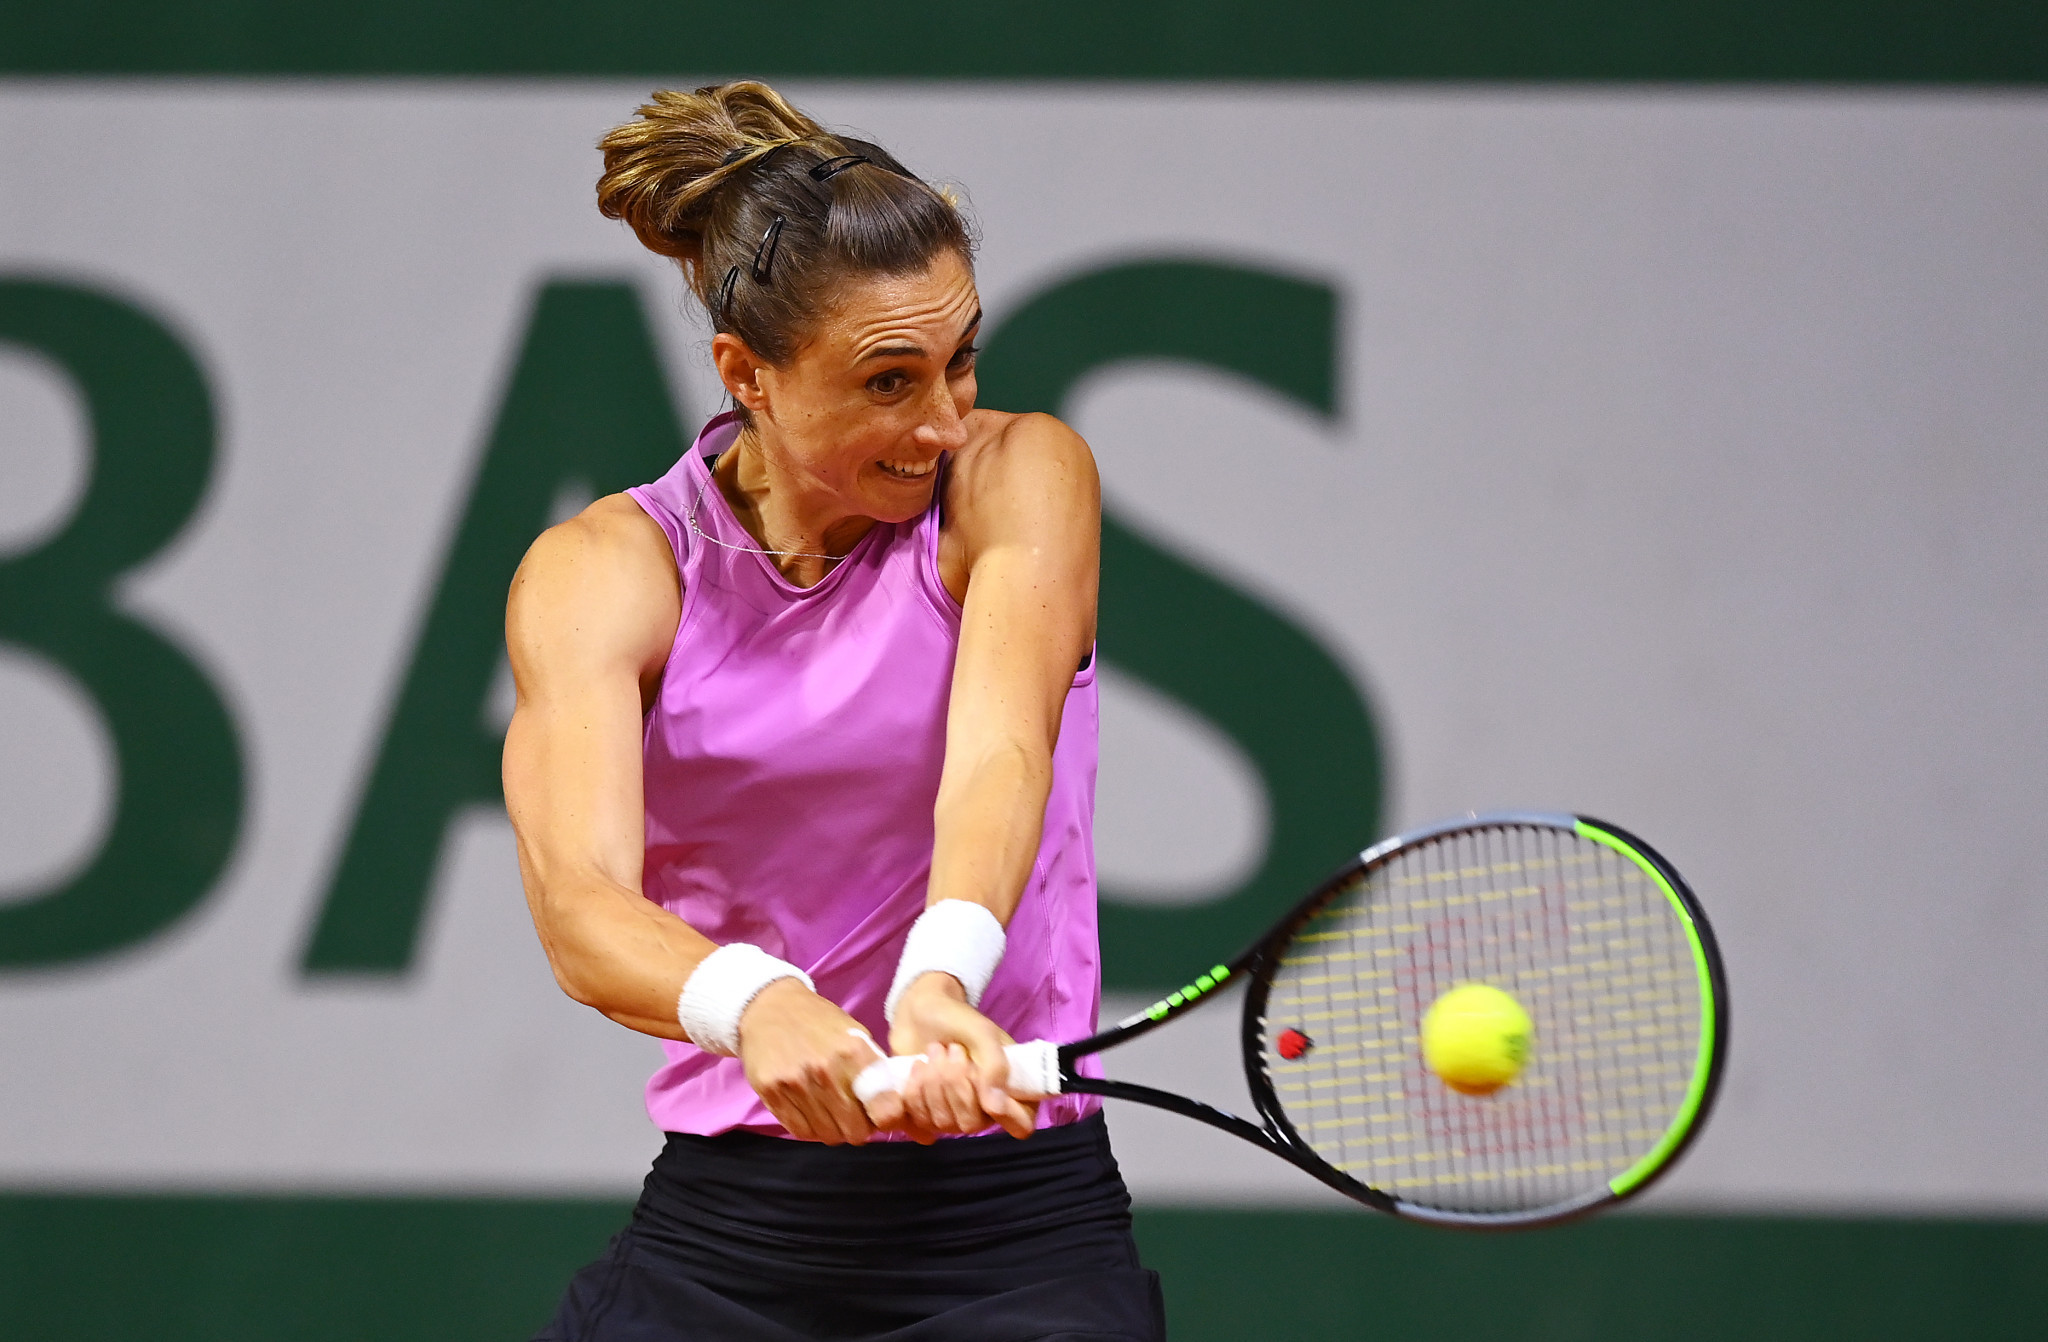 Petra Martic, the 13th seed, reached round two after winning in two close sets against Japan's Misaki Doi ©Getty Images